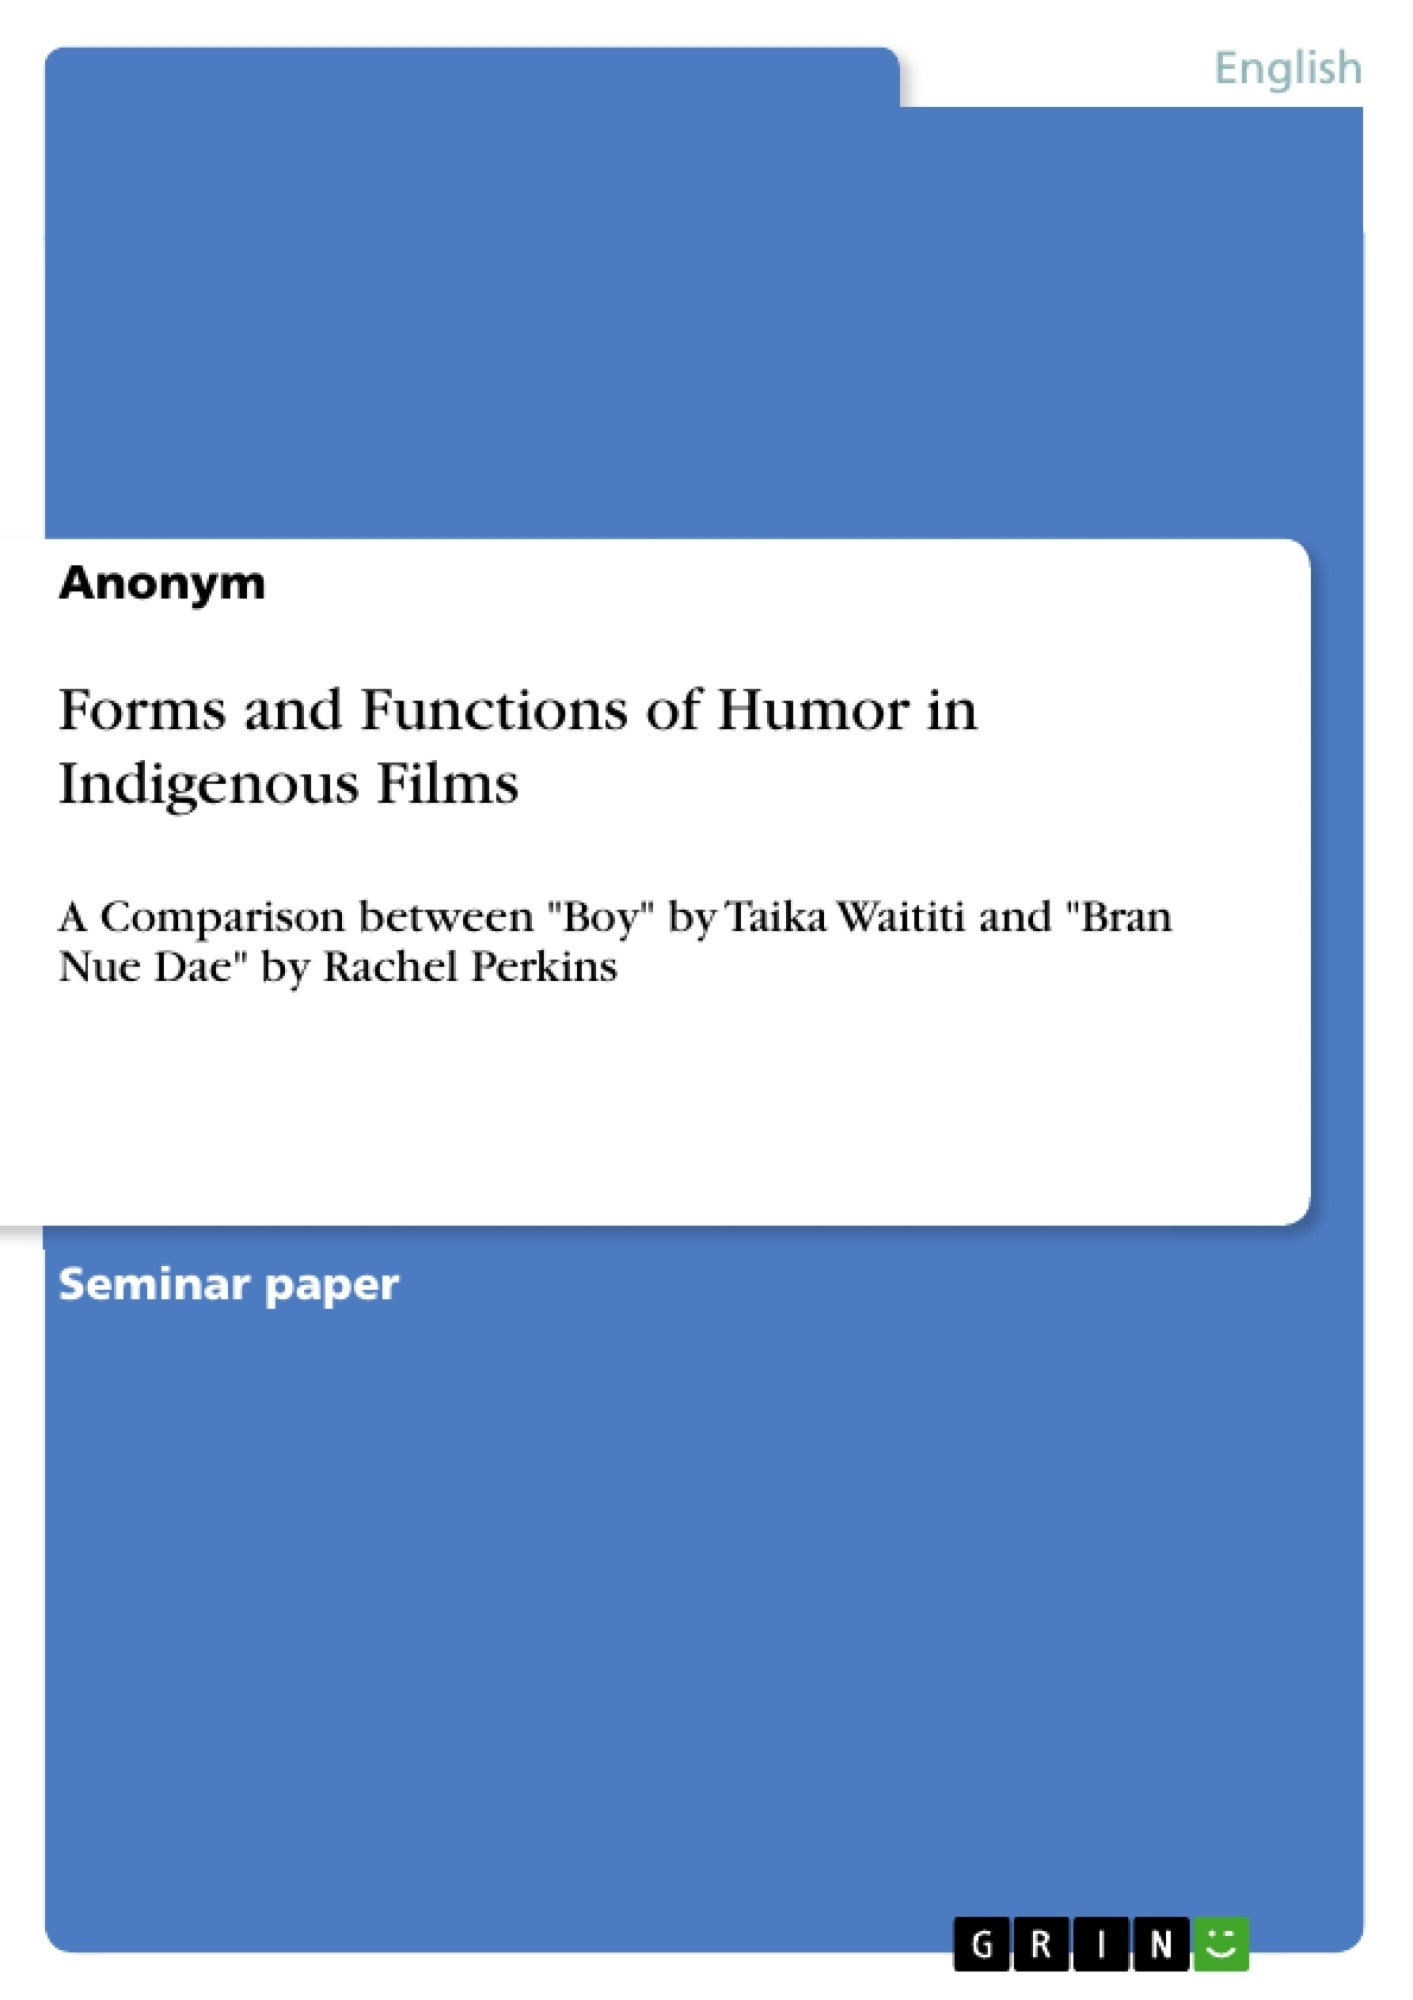 GRIN - Forms and Functions of Humor in Indigenous Films